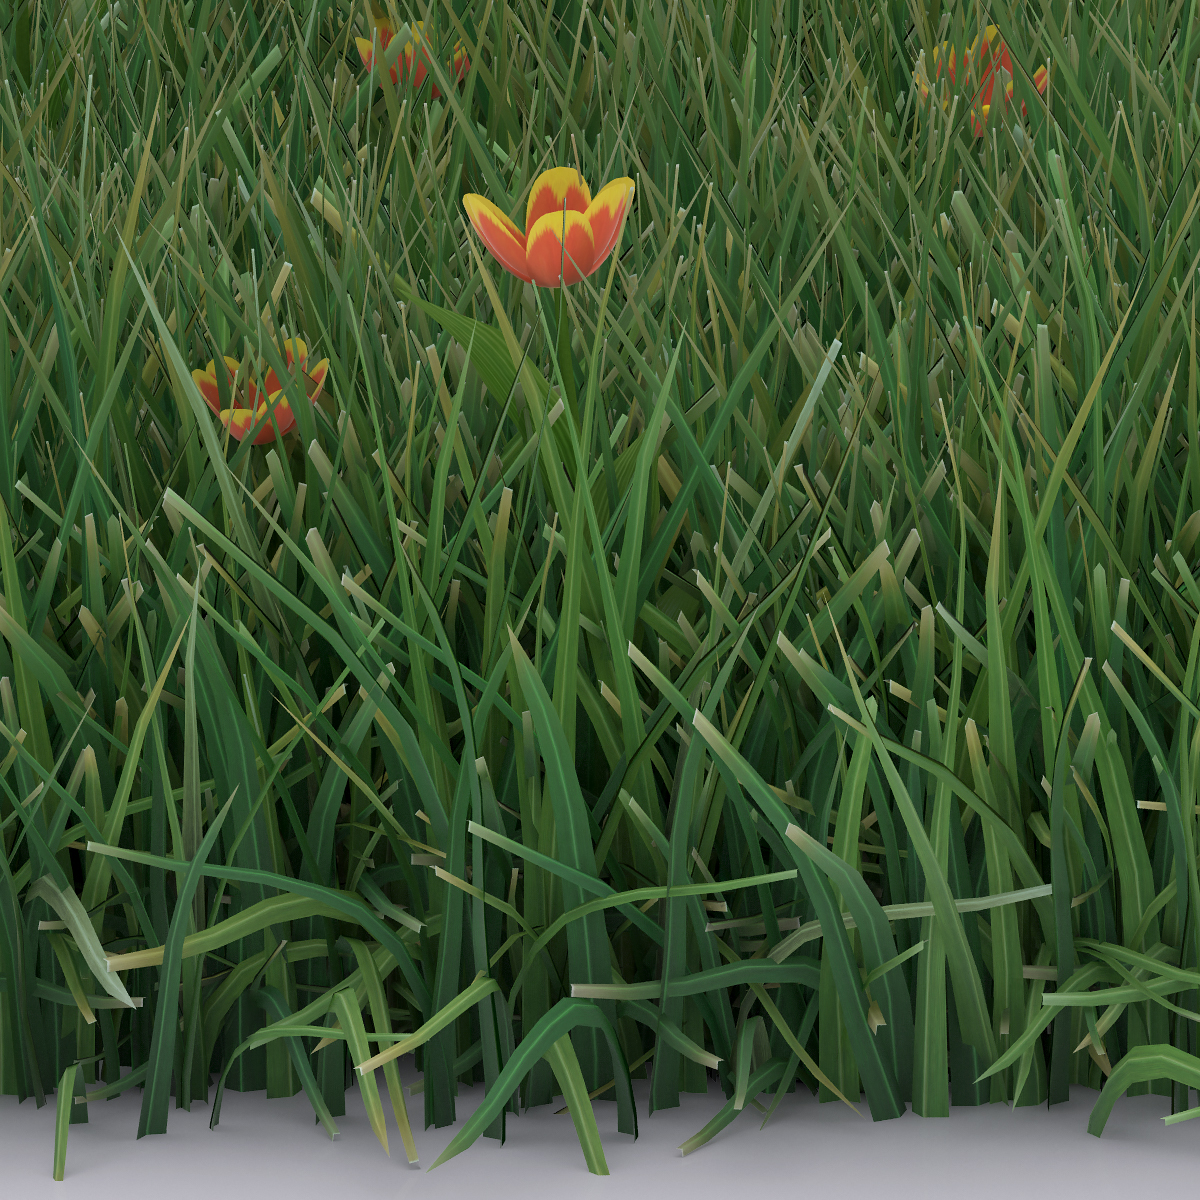 Detail Virtual Flowers and Grass 004 - 2018 - Virtual Flowers and Grass